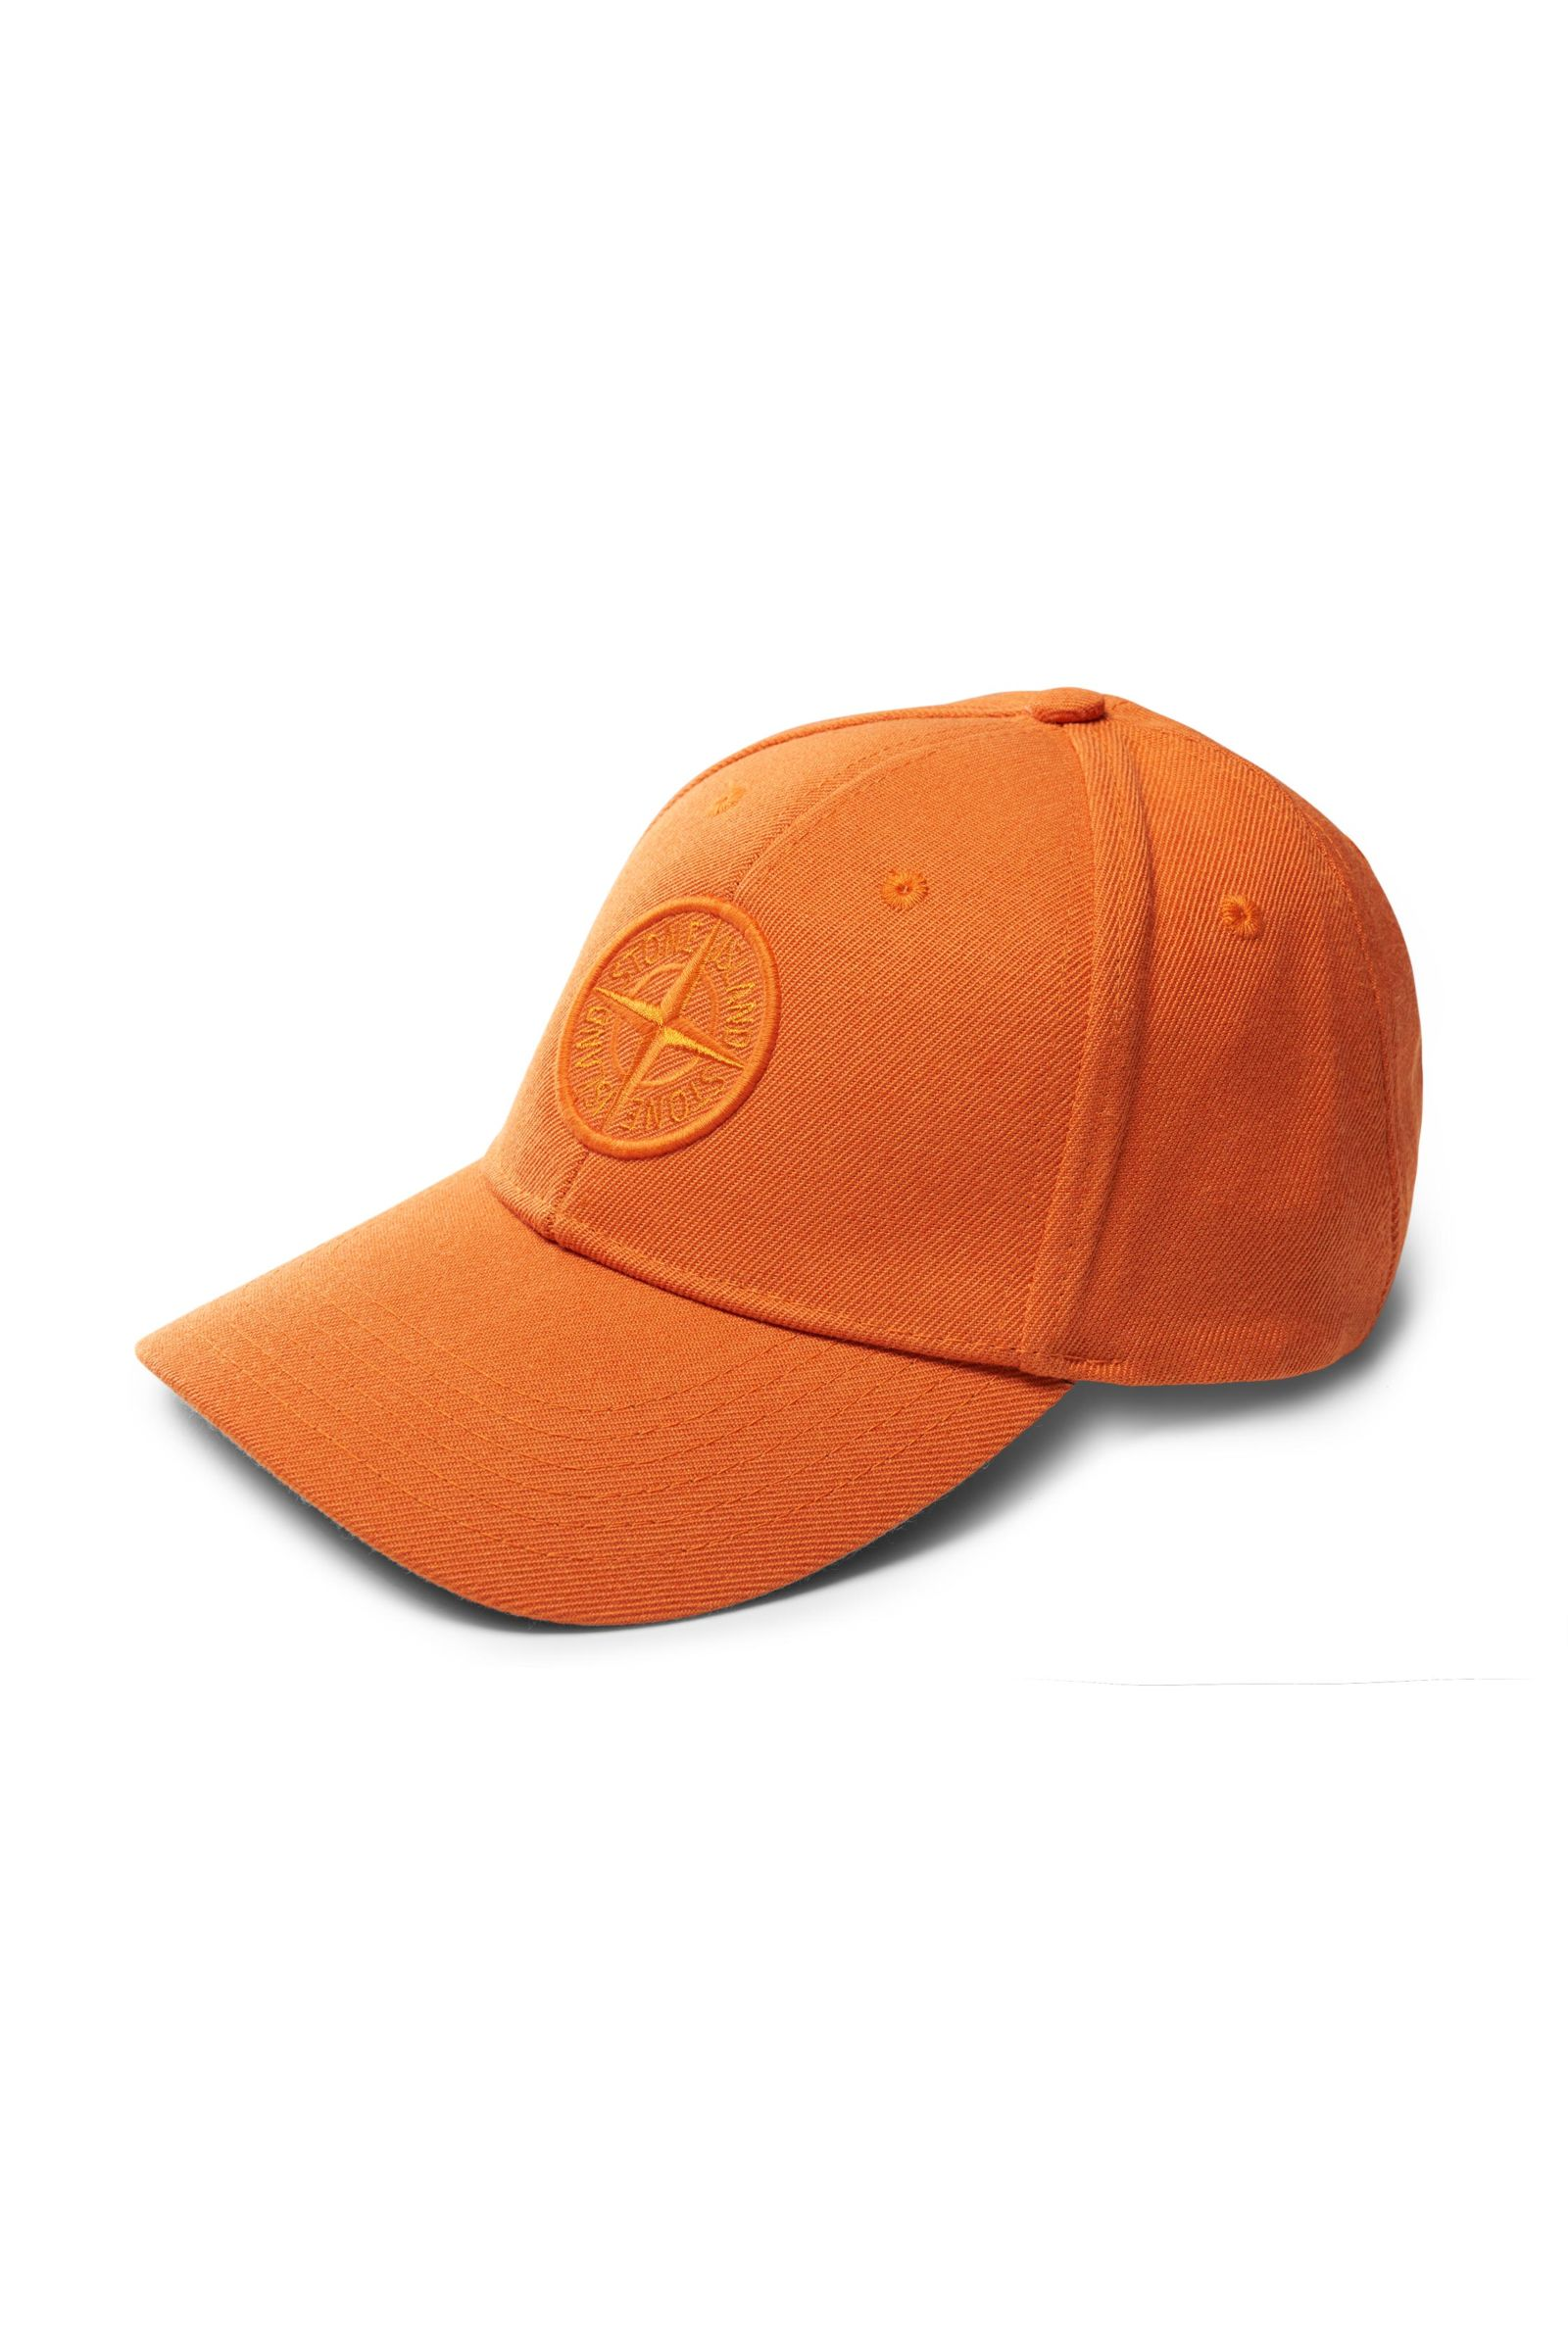 Baseball-Cap orange